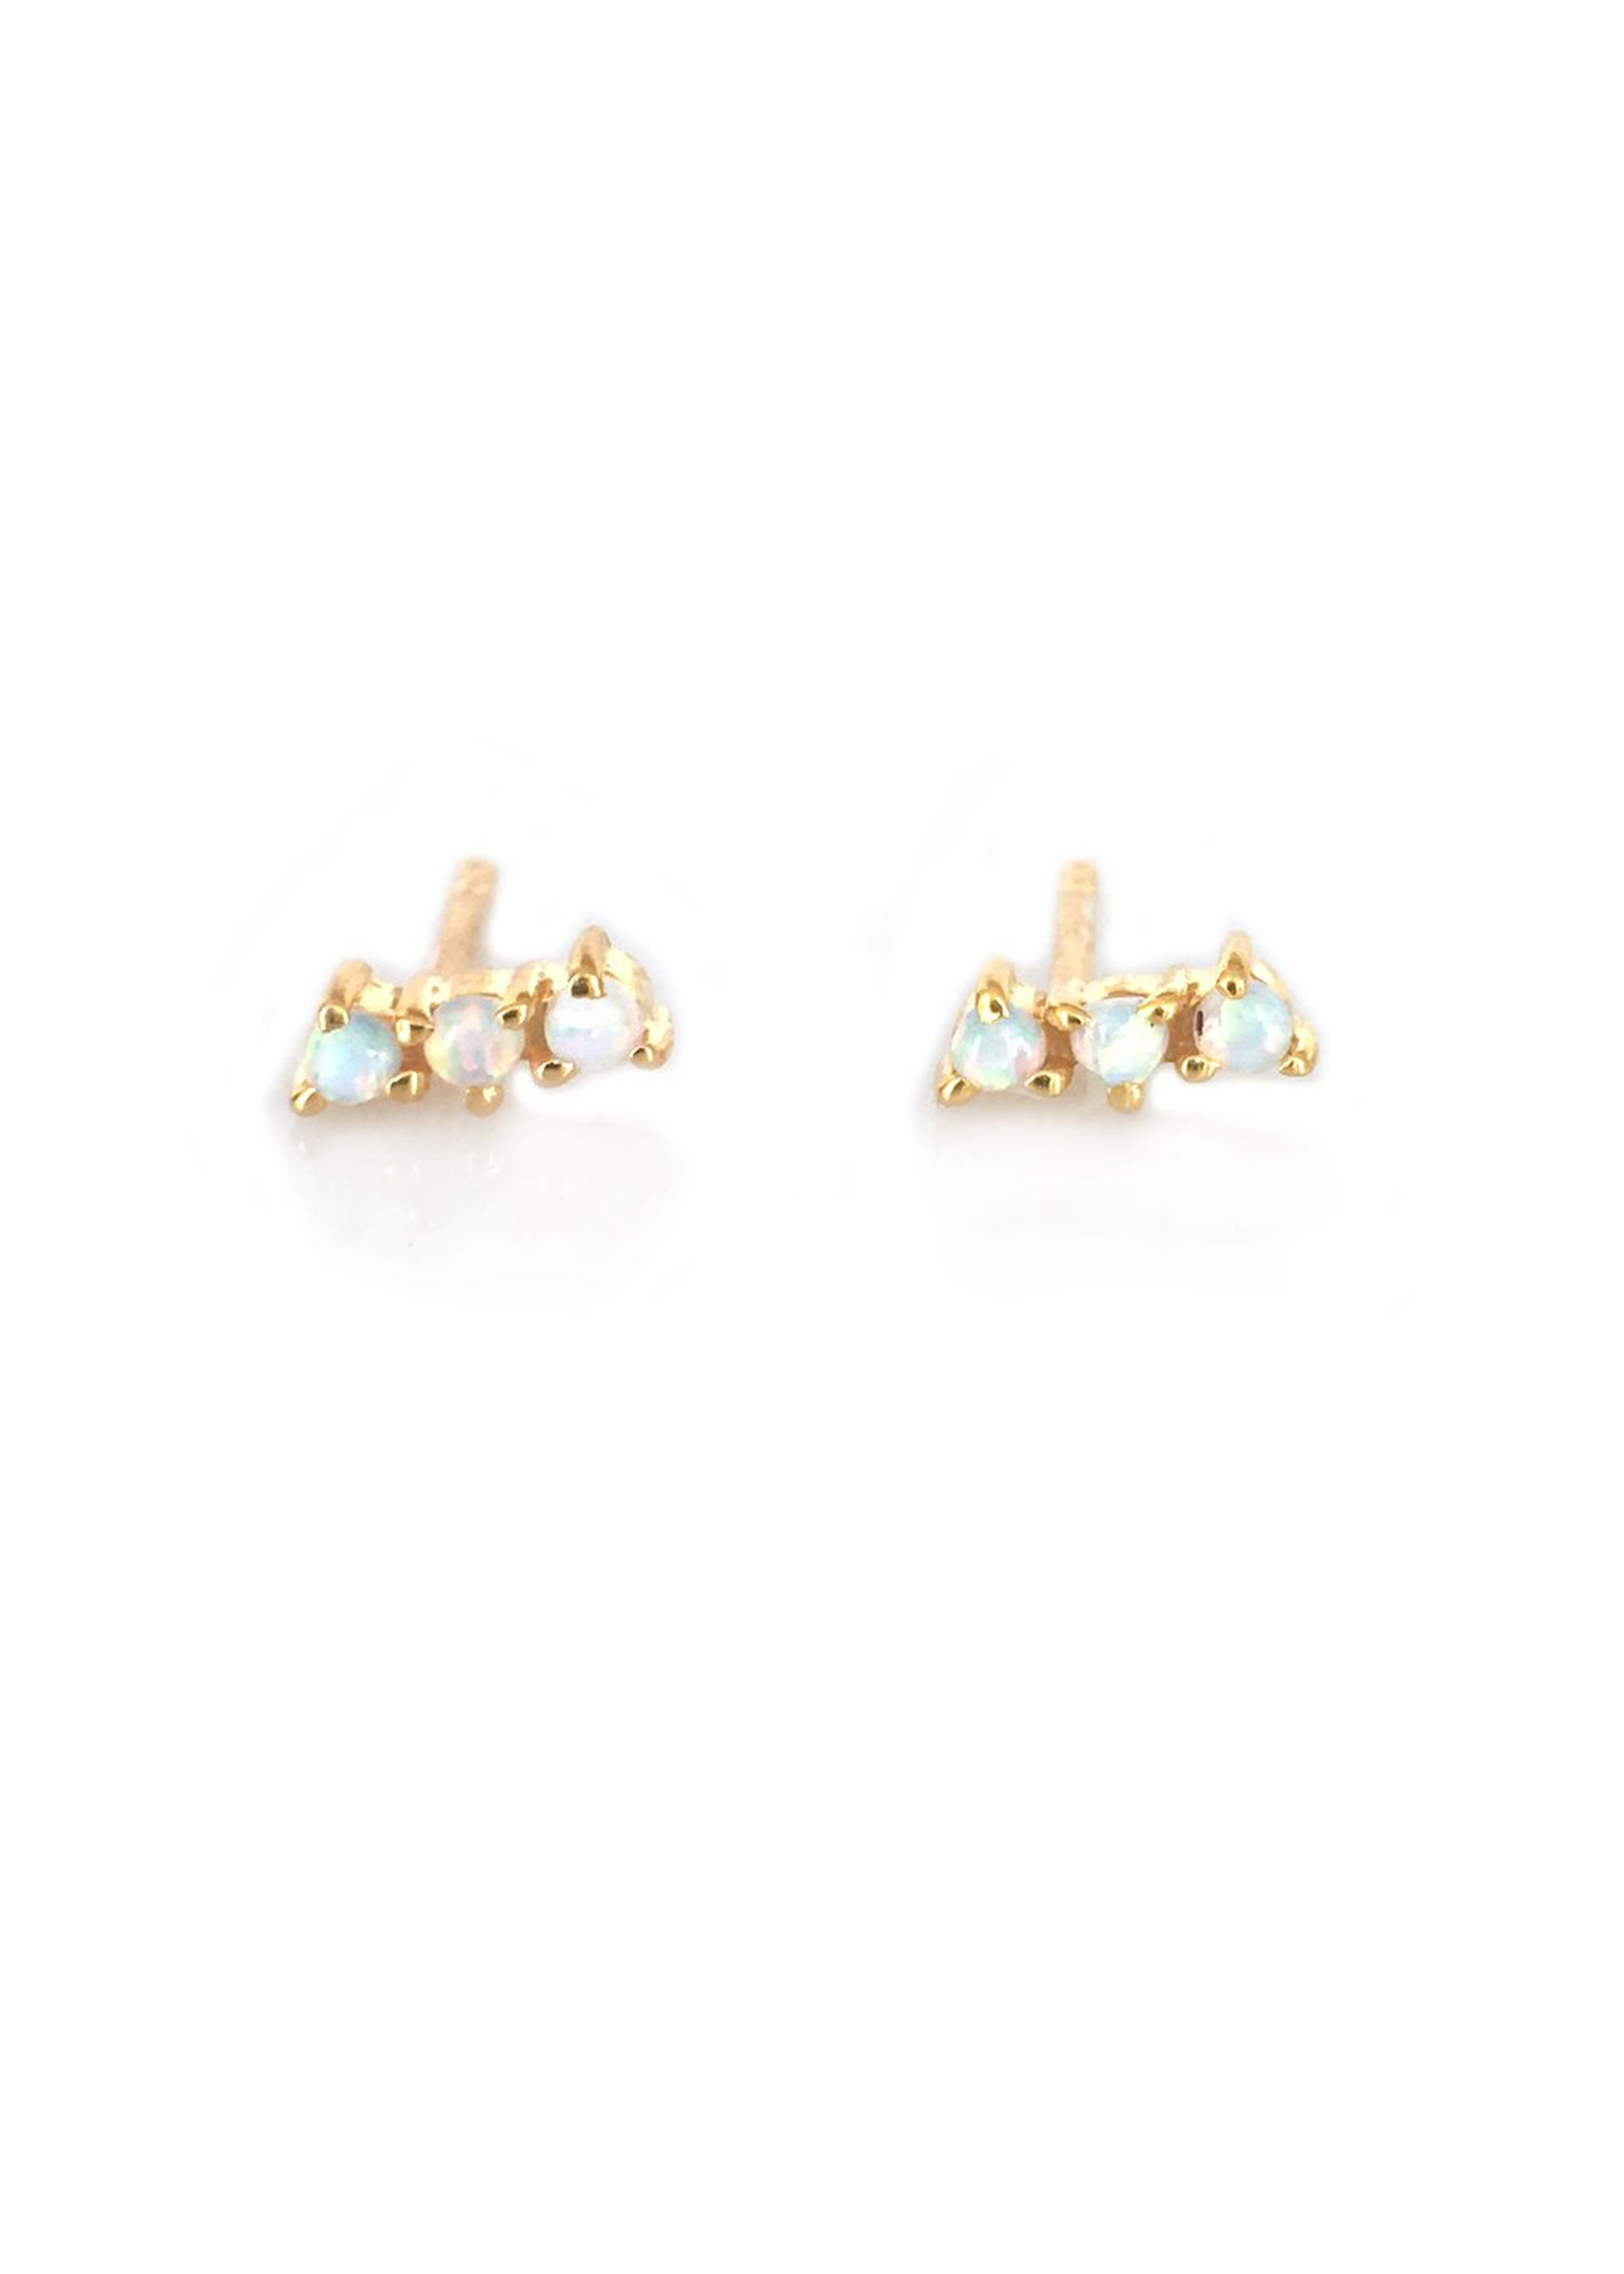 La Kaiser Trinity Opal Stud Earrings